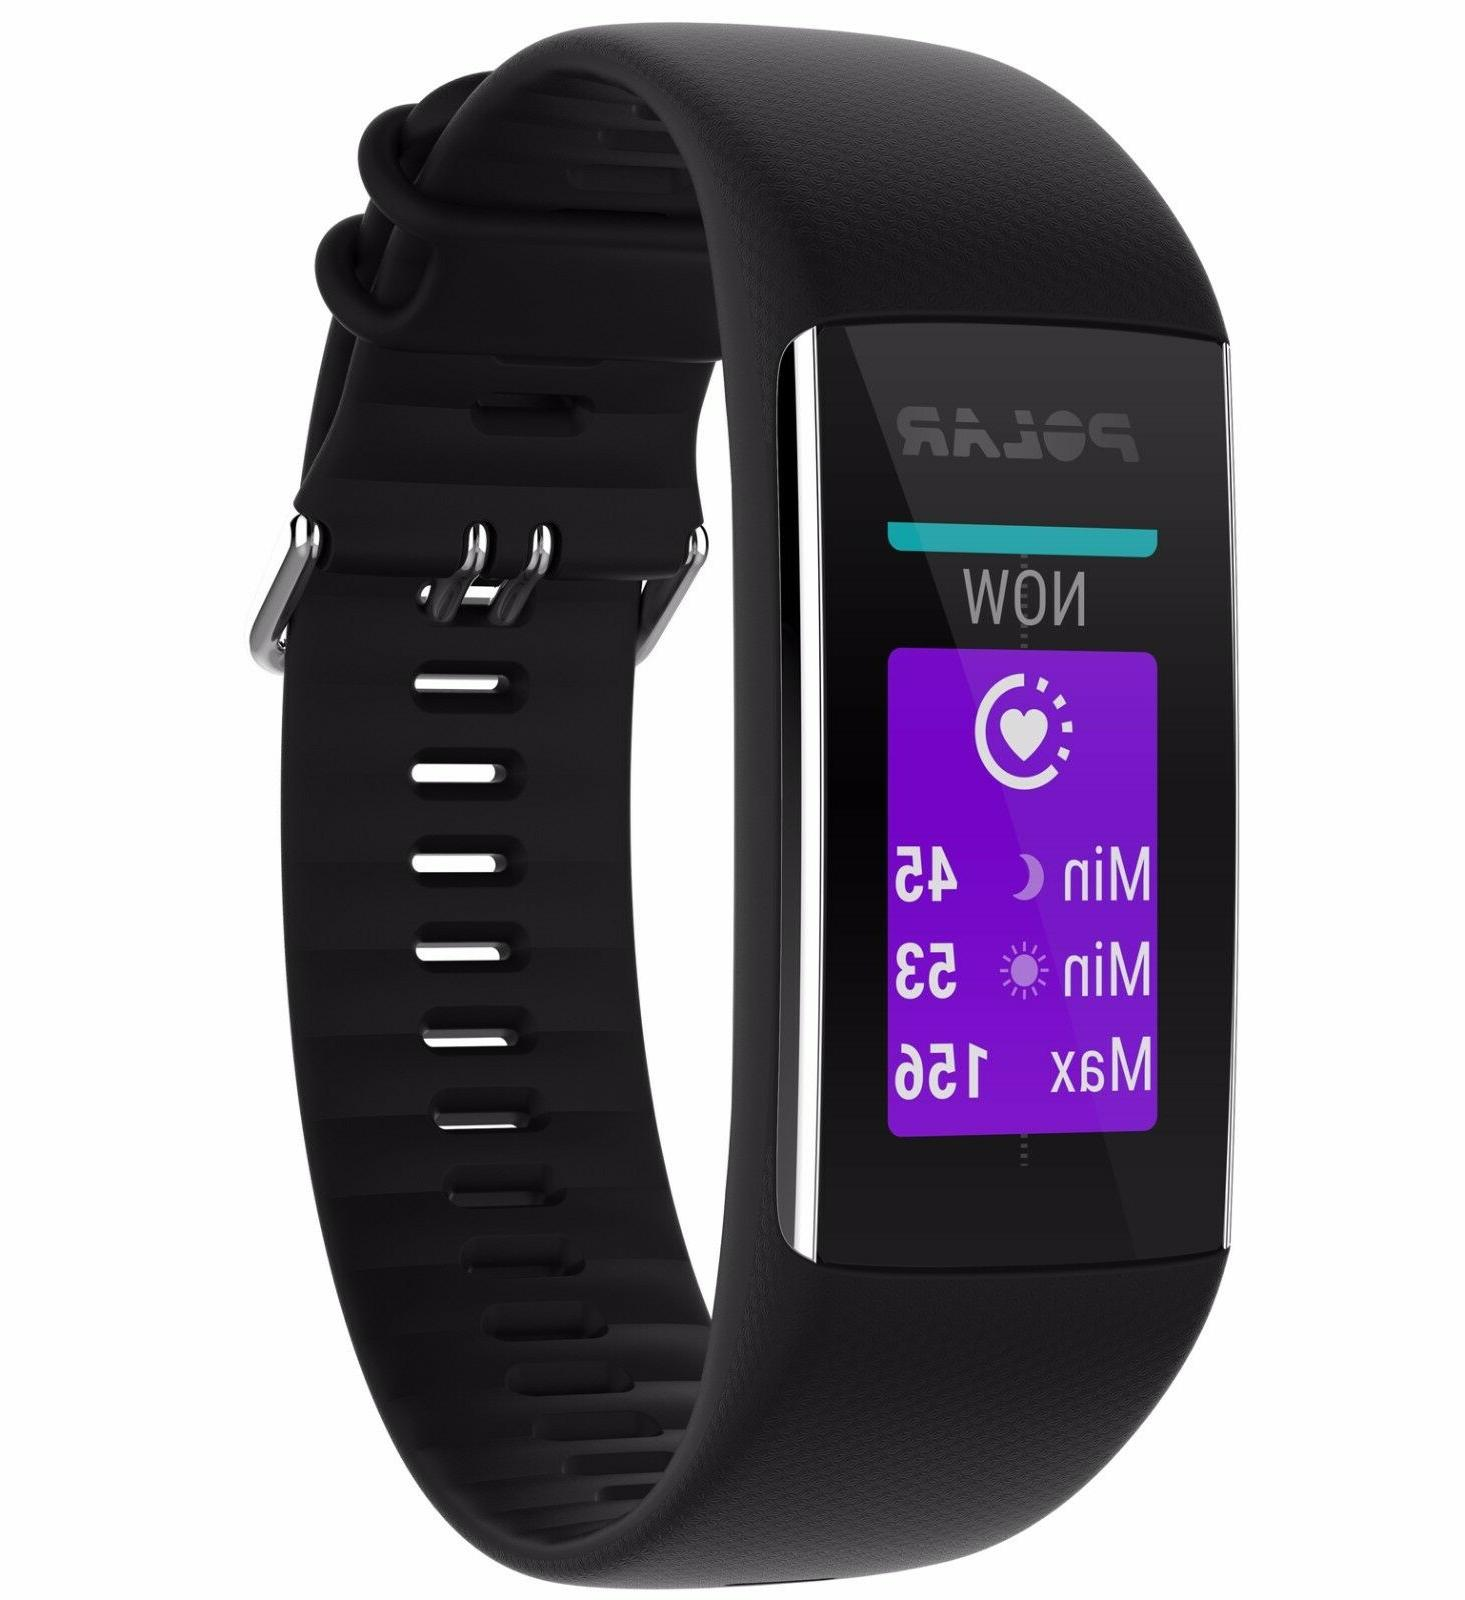 a370 strapless fitness tracker with wrist based